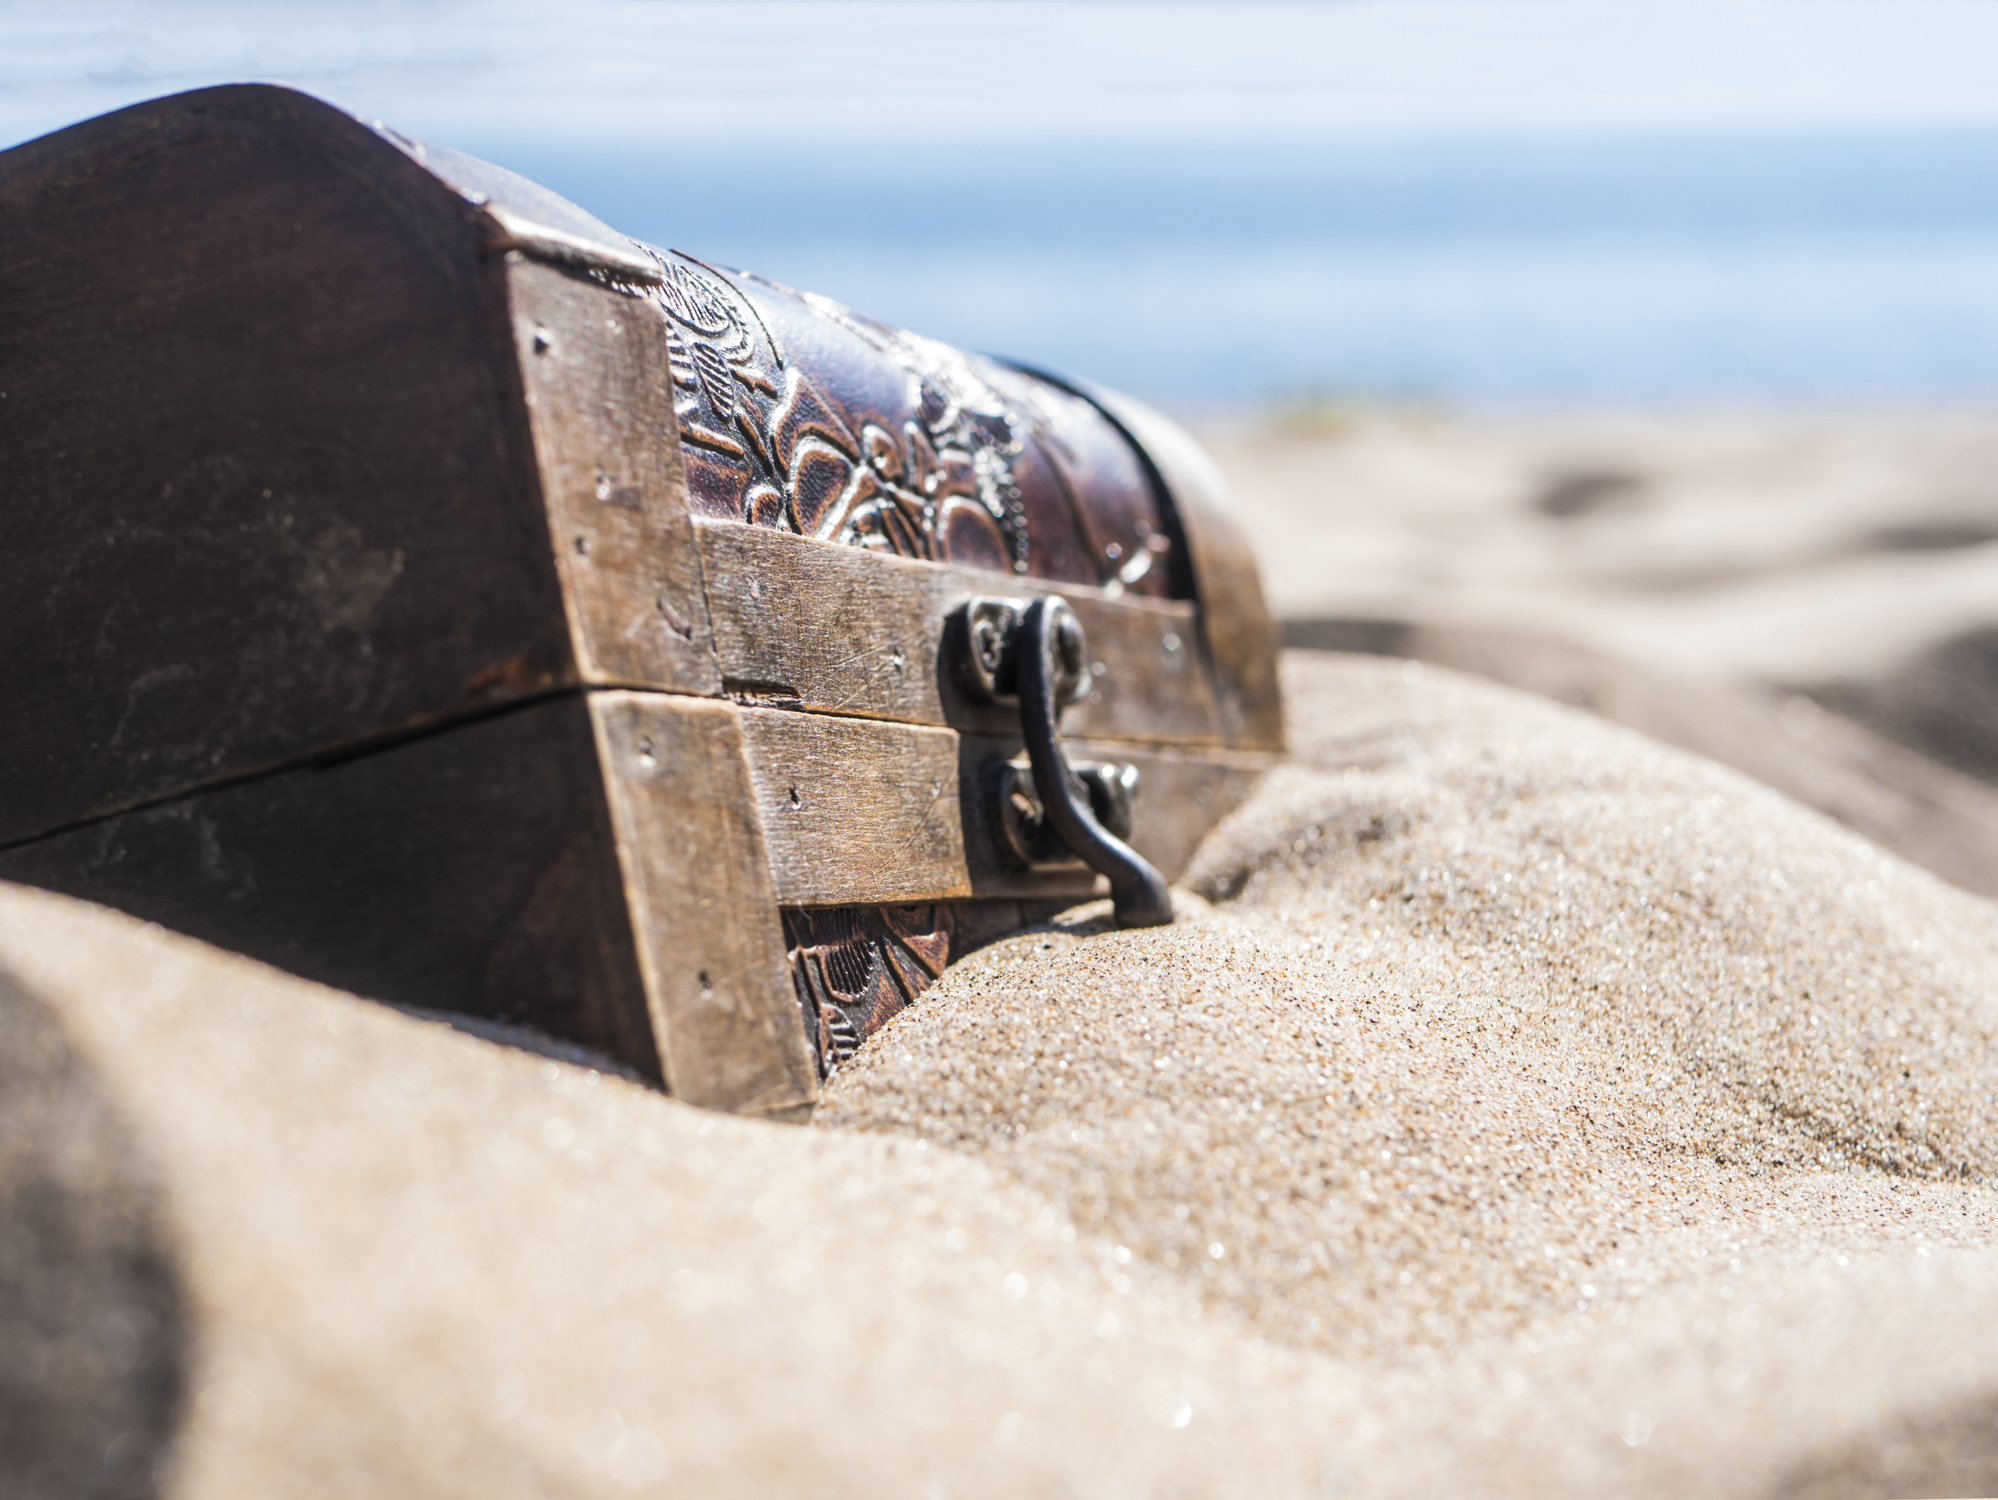 A treasure chest peeking up out of the sand.